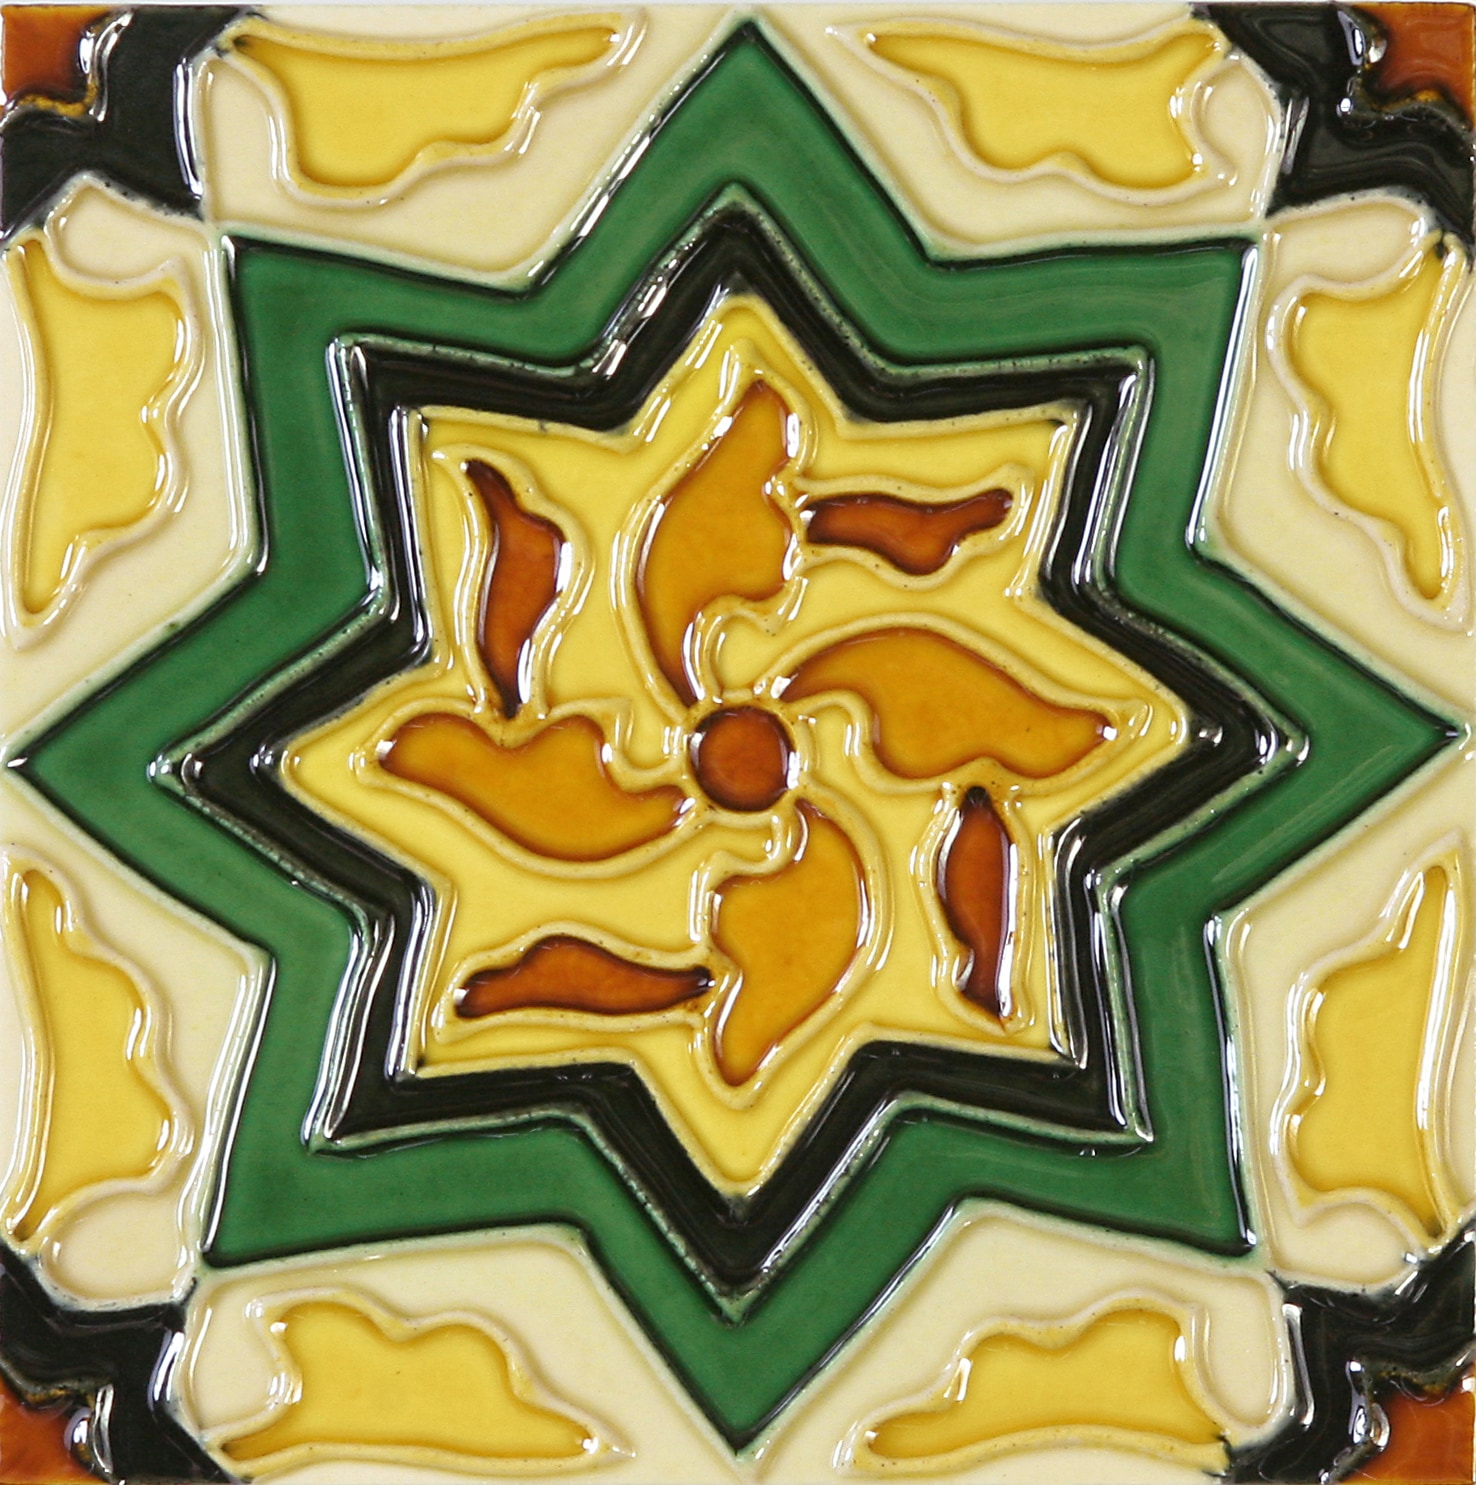 Hand-Painted Ceramic Glazed Wall Tile in Cirino Hand-Painted Ceramic Glazed Wall Tile in Cirino 0